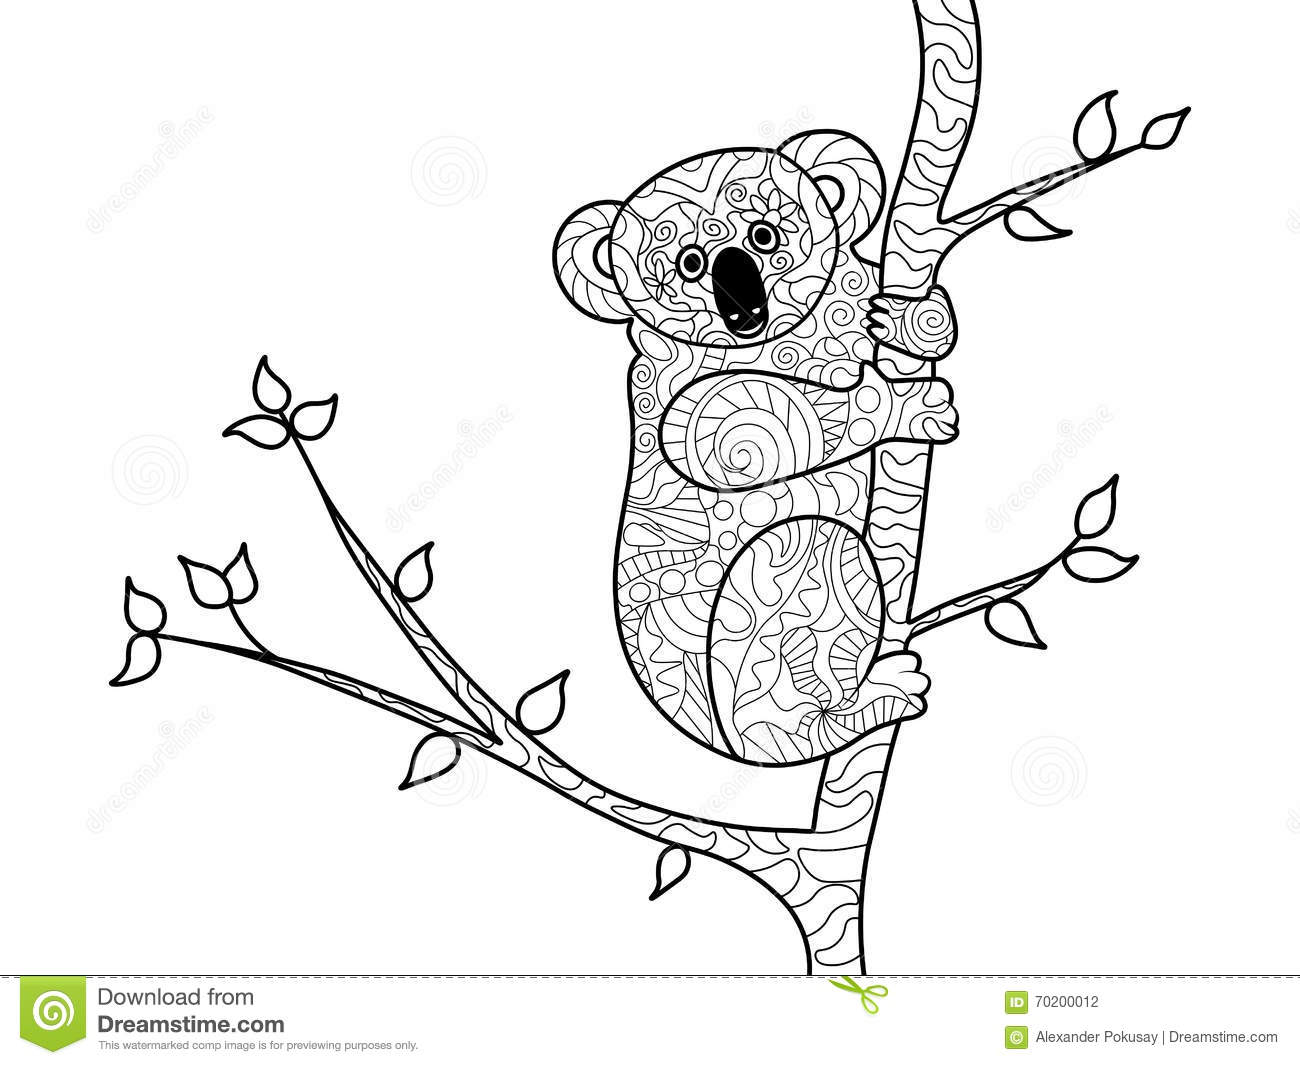 koala bear coloring book adults vector tree illustration anti stress adult zentangle style black white